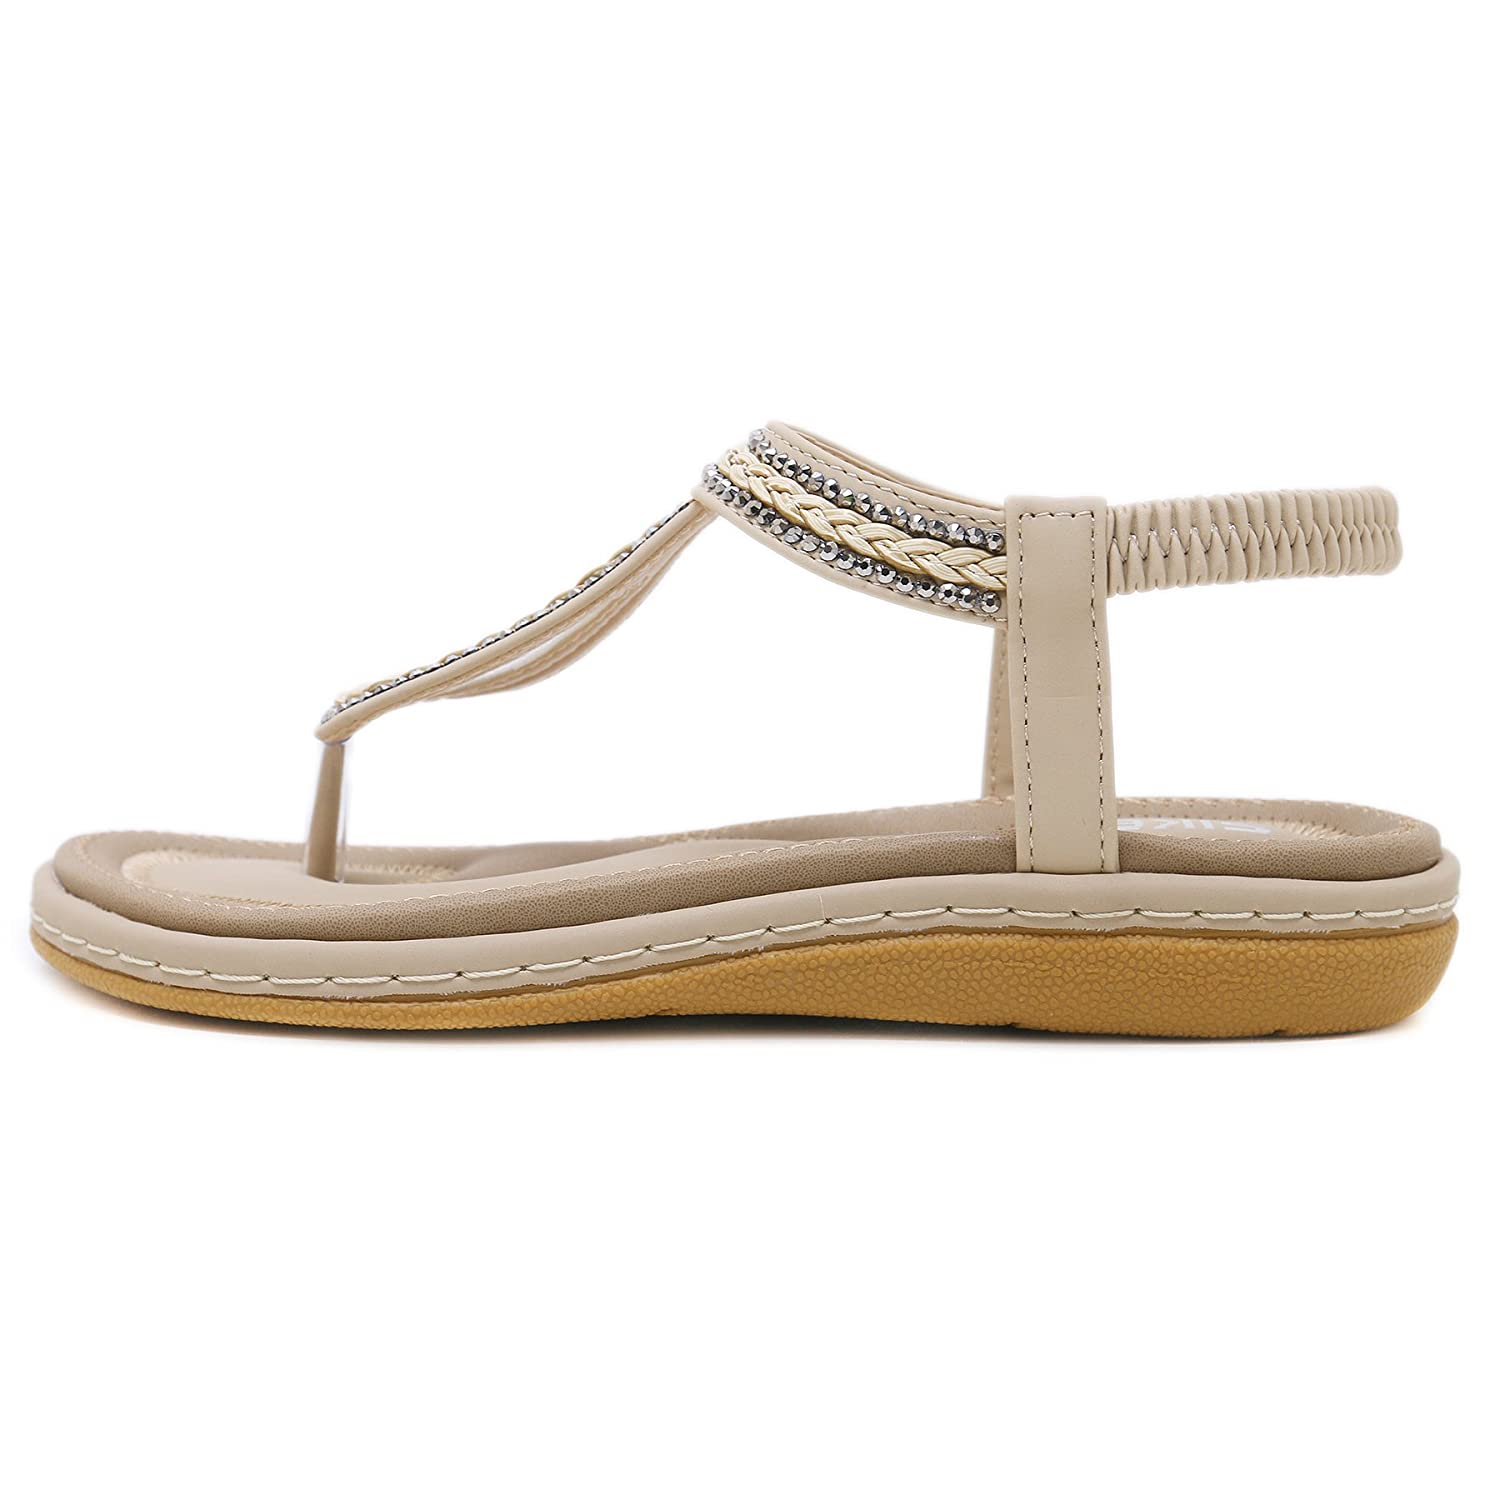 ebfc6bf120b54e BELLOO Women Summer Low Flat Heel Flip Flop Sandals Clip On Post Thong Boho  Shoes with Flowered Rhinestone  Amazon.co.uk  Shoes   Bags